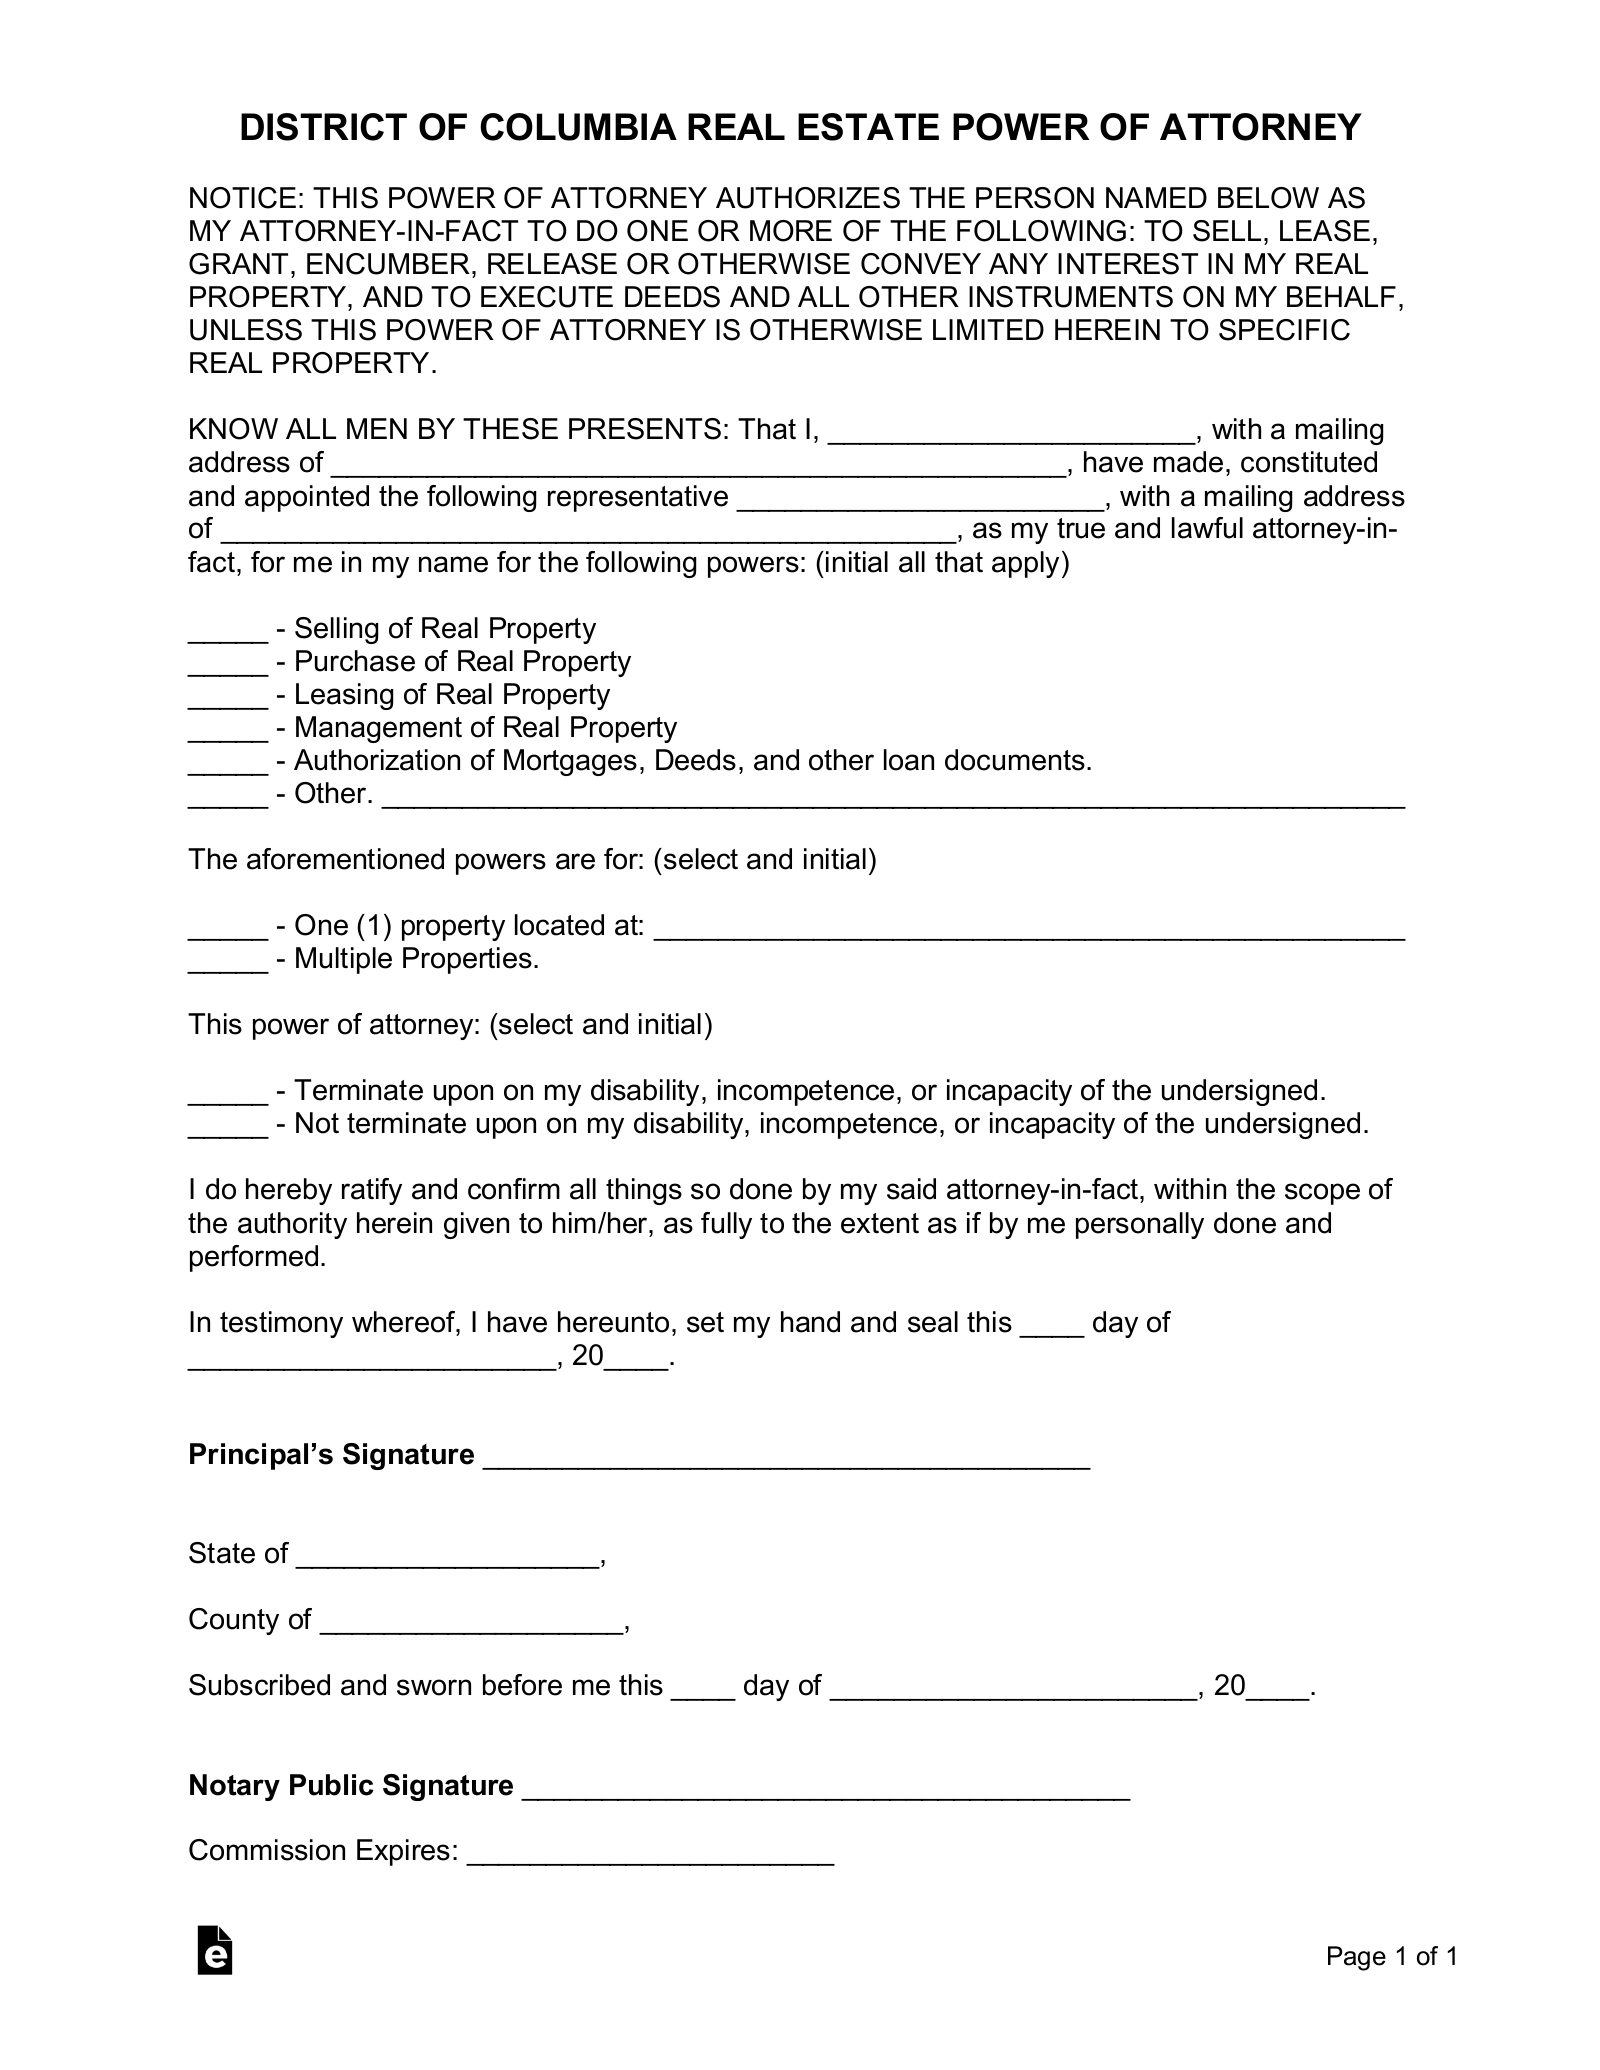 Free Washington D.C. Real Estate Power of Attorney Form   PDF ...